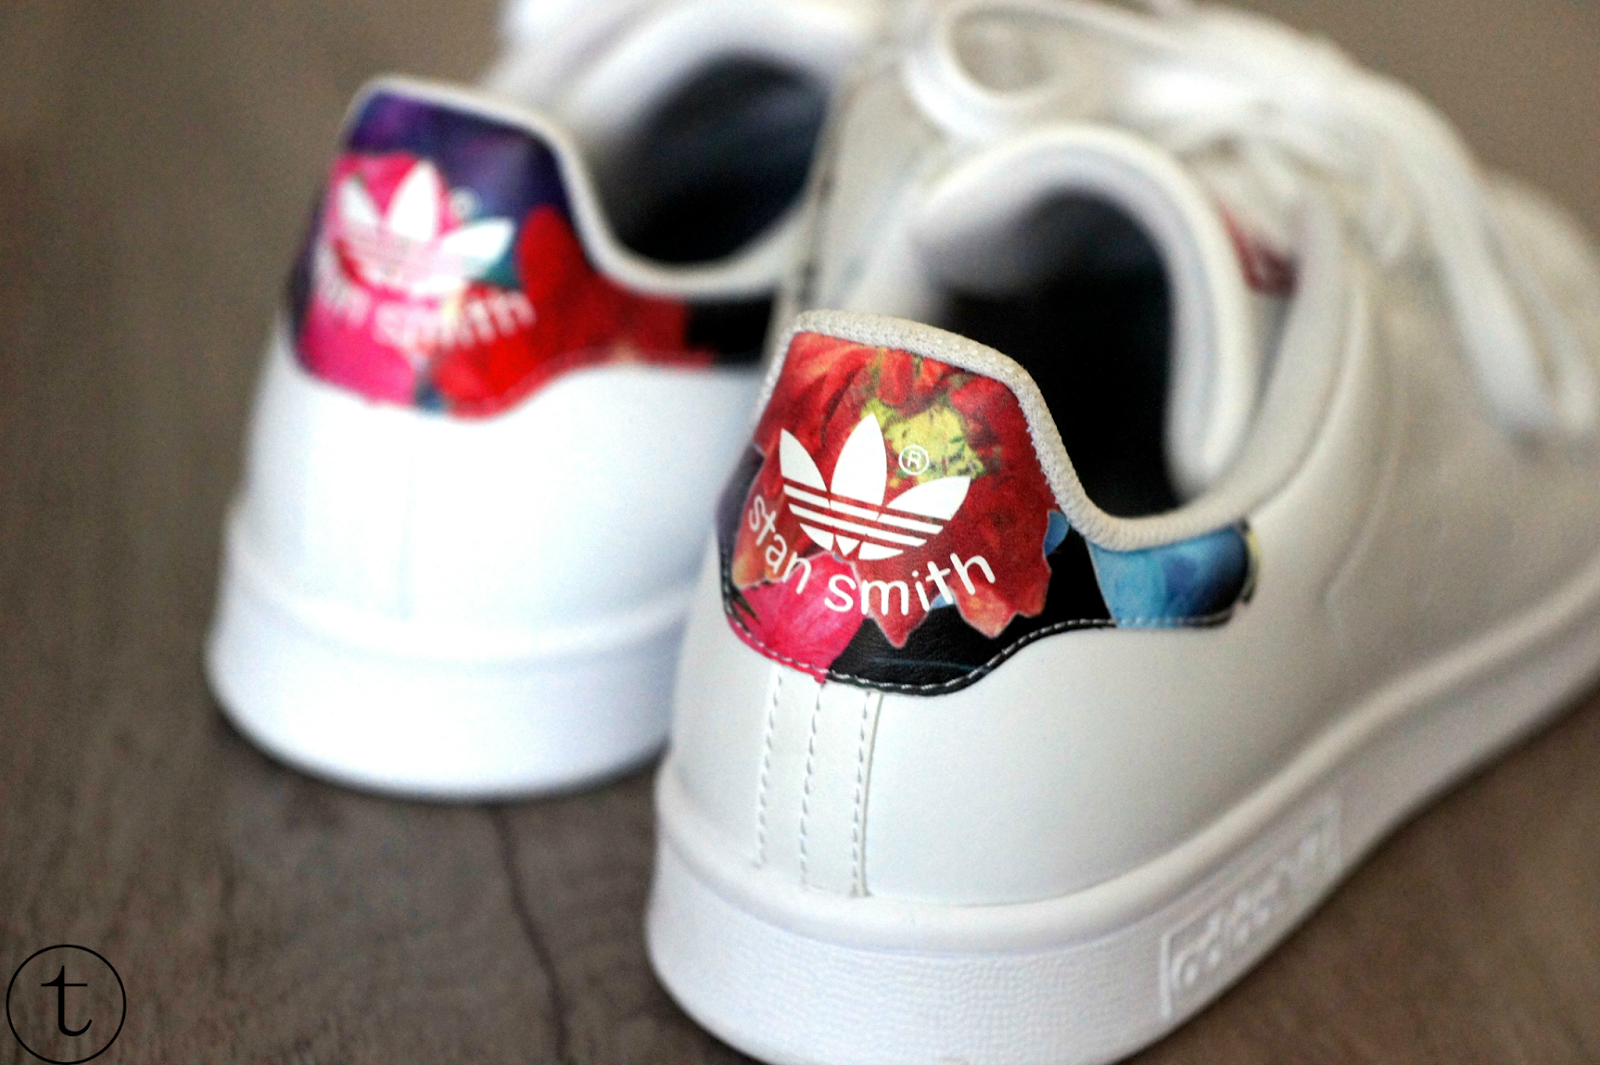 stan smith flowers